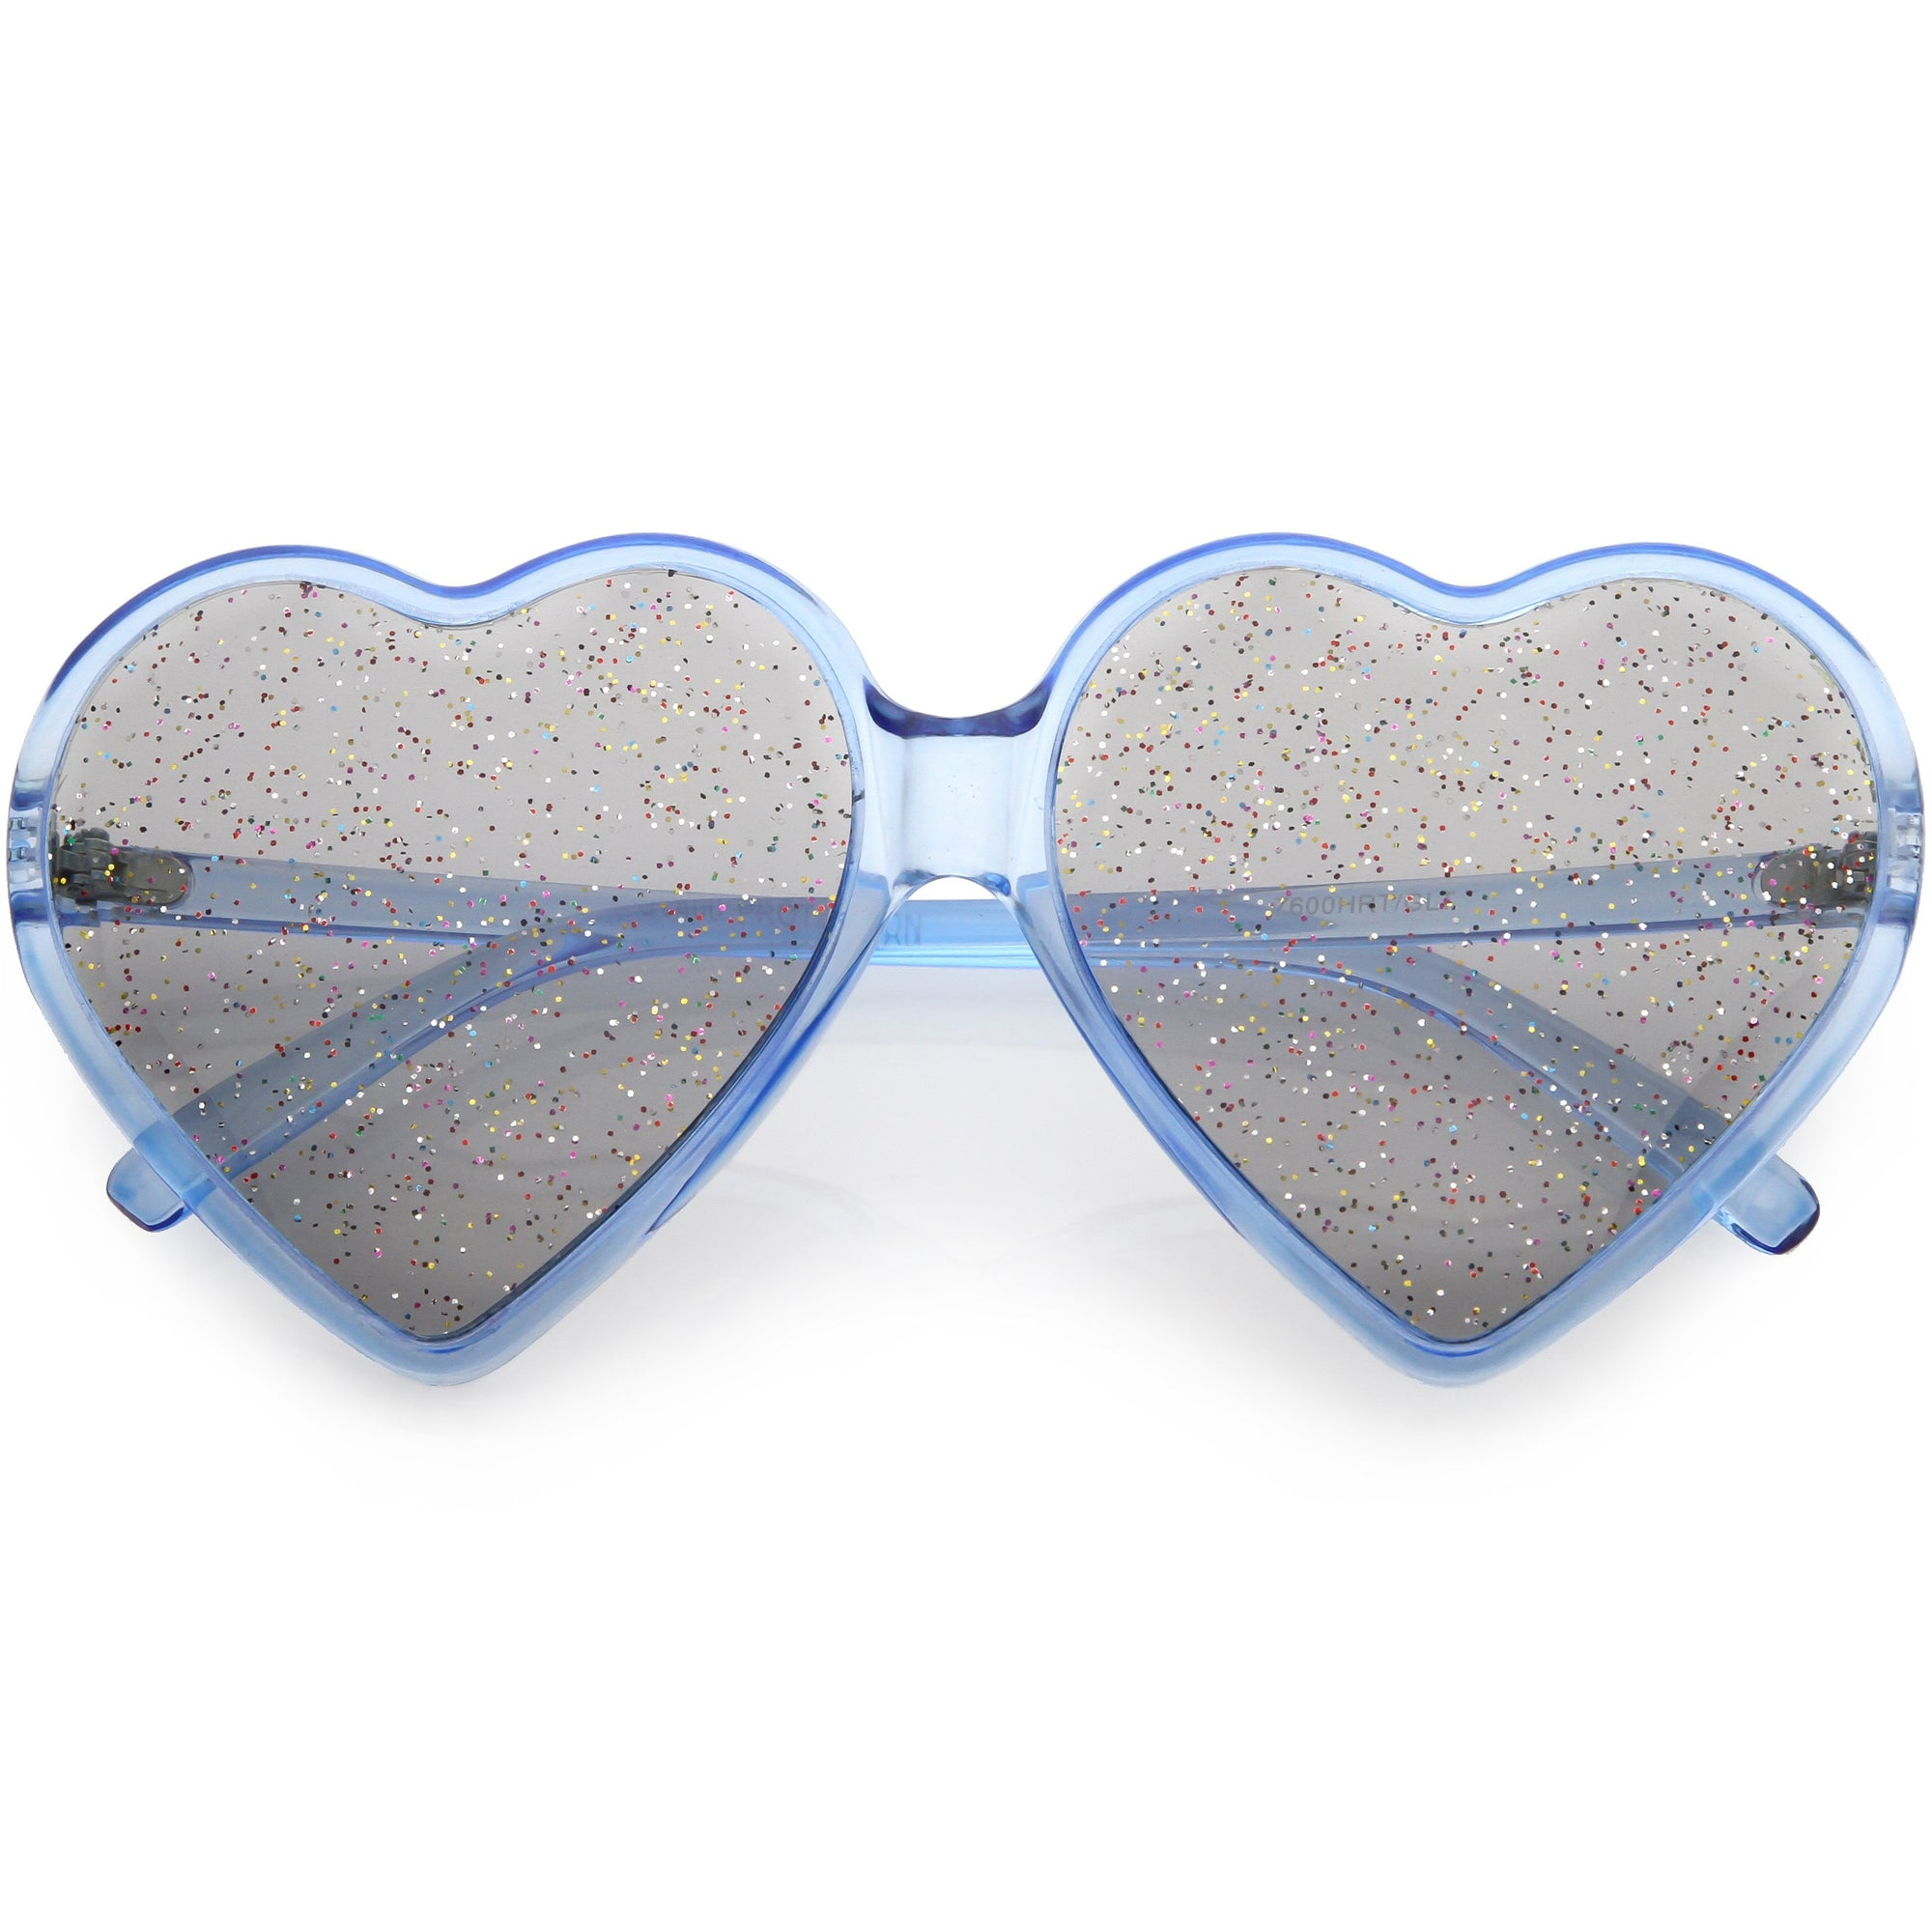 27d2f9451e6d ... Women's Oversize Novelty Heart Shape Glitter Lens Sunglasses C876 ·  Blue Smoke